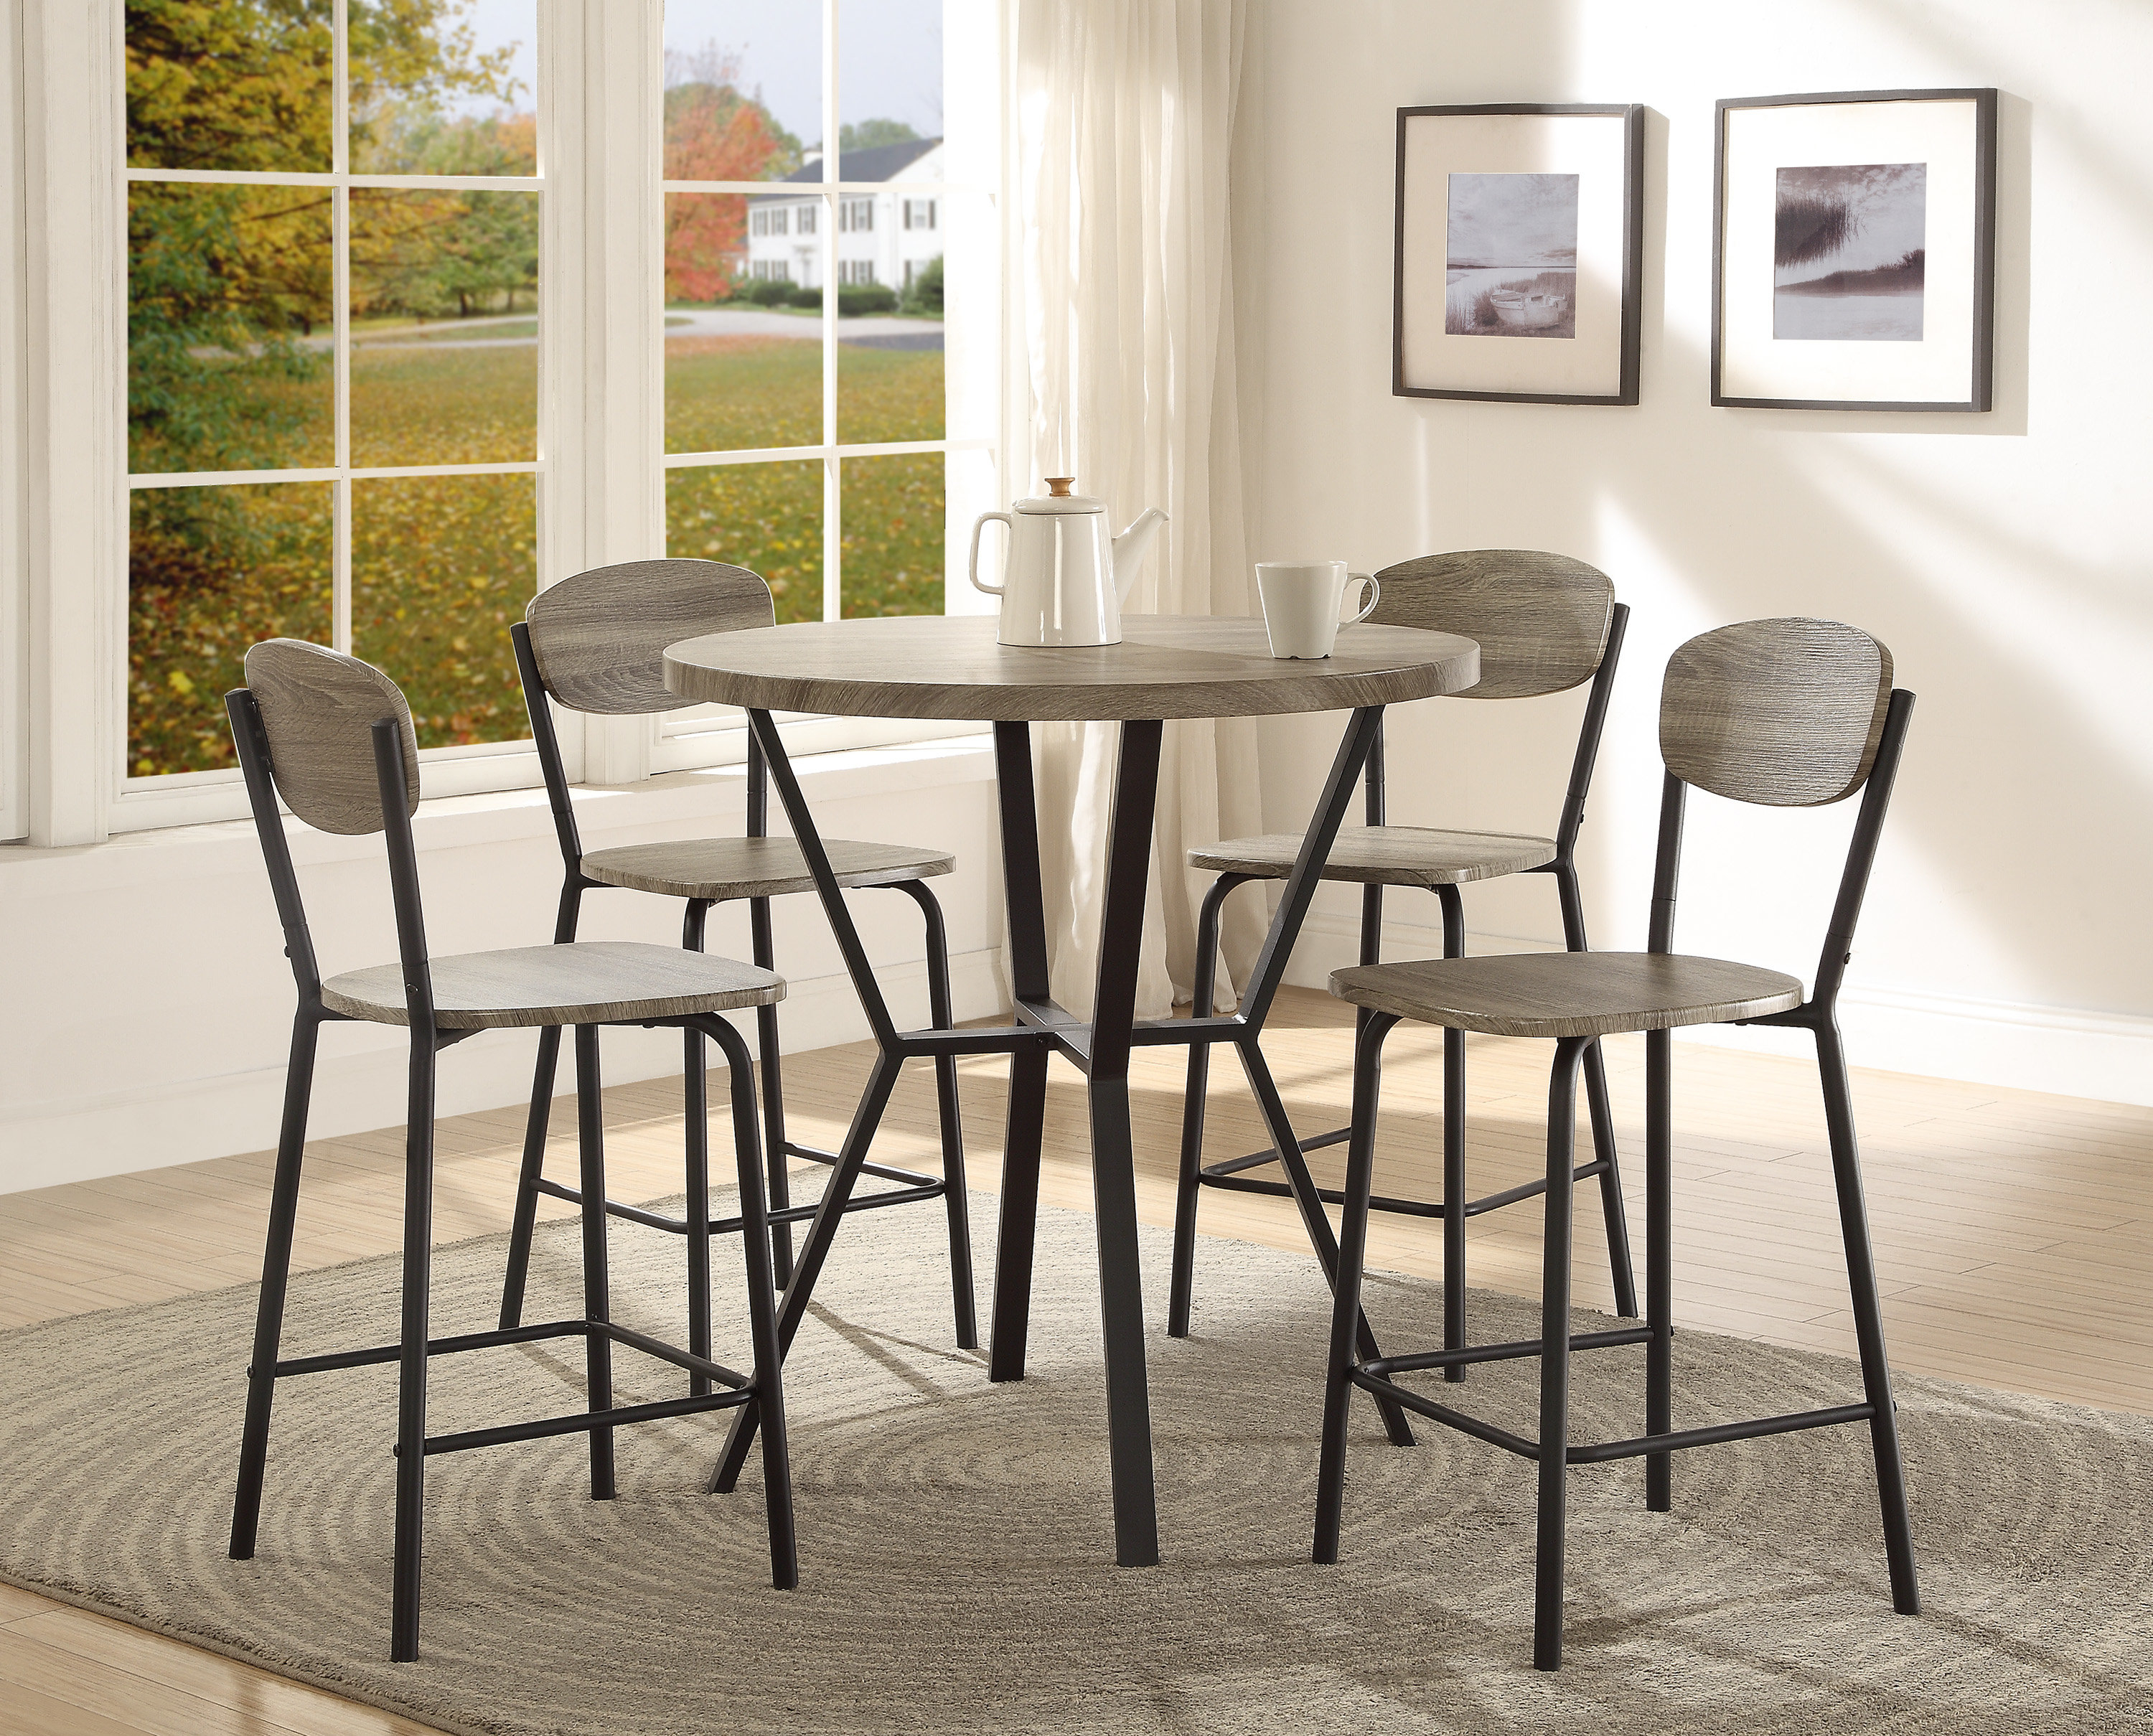 Millwood Pines Felicia 5 Piece Counter Height Dining Set & Reviews With Recent Middleport 5 Piece Dining Sets (View 11 of 25)